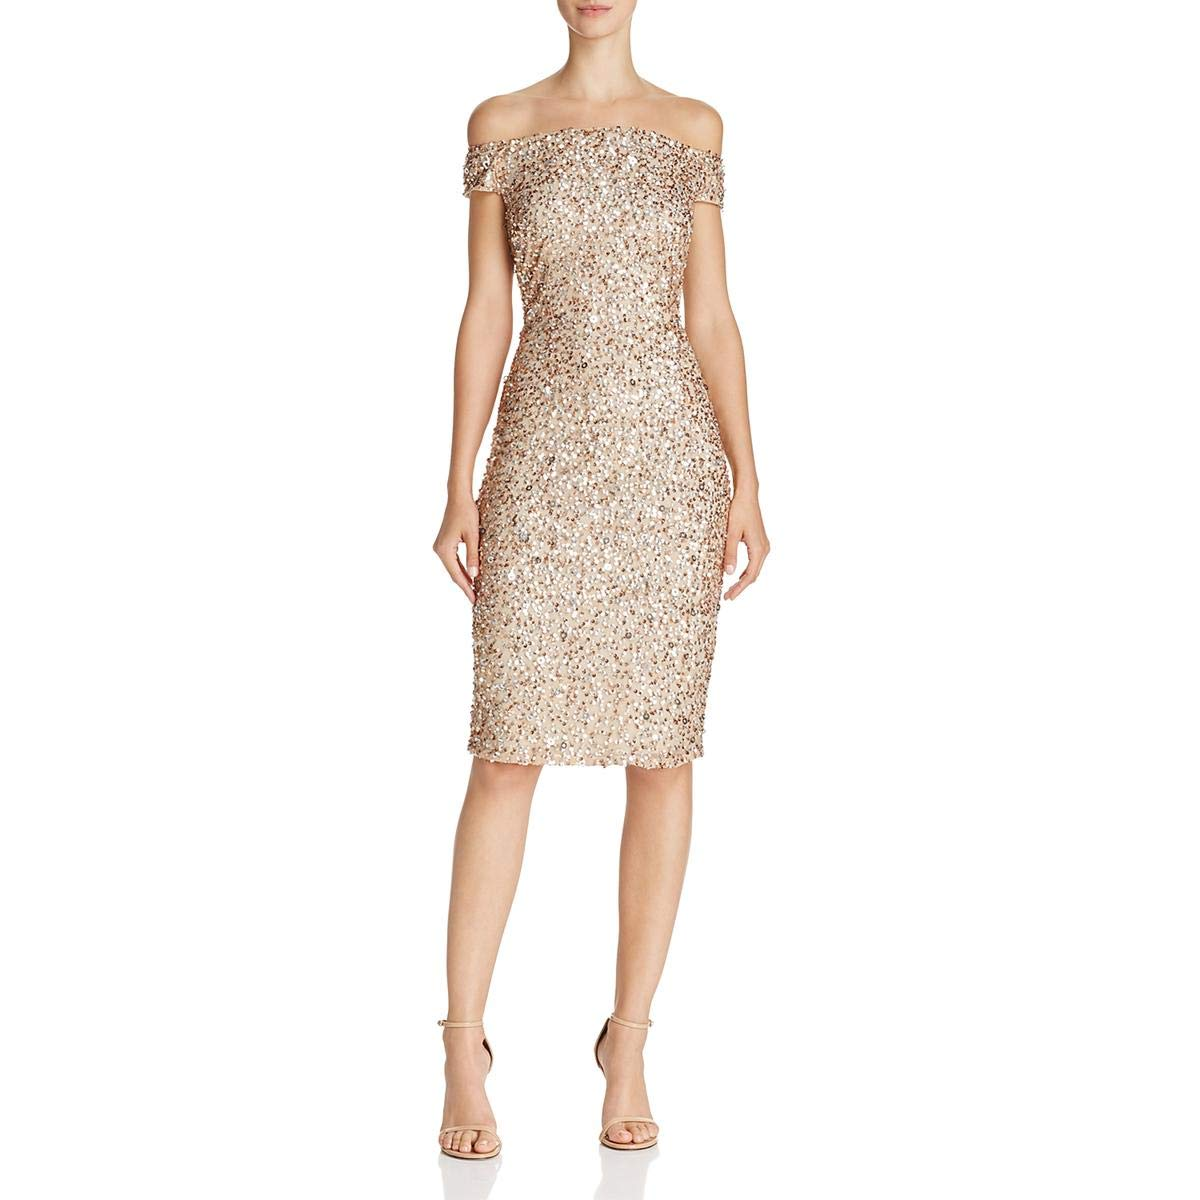 Champagne Silver Adrianna Papell Womens Sequined OffTheShoulder Cocktail Dress